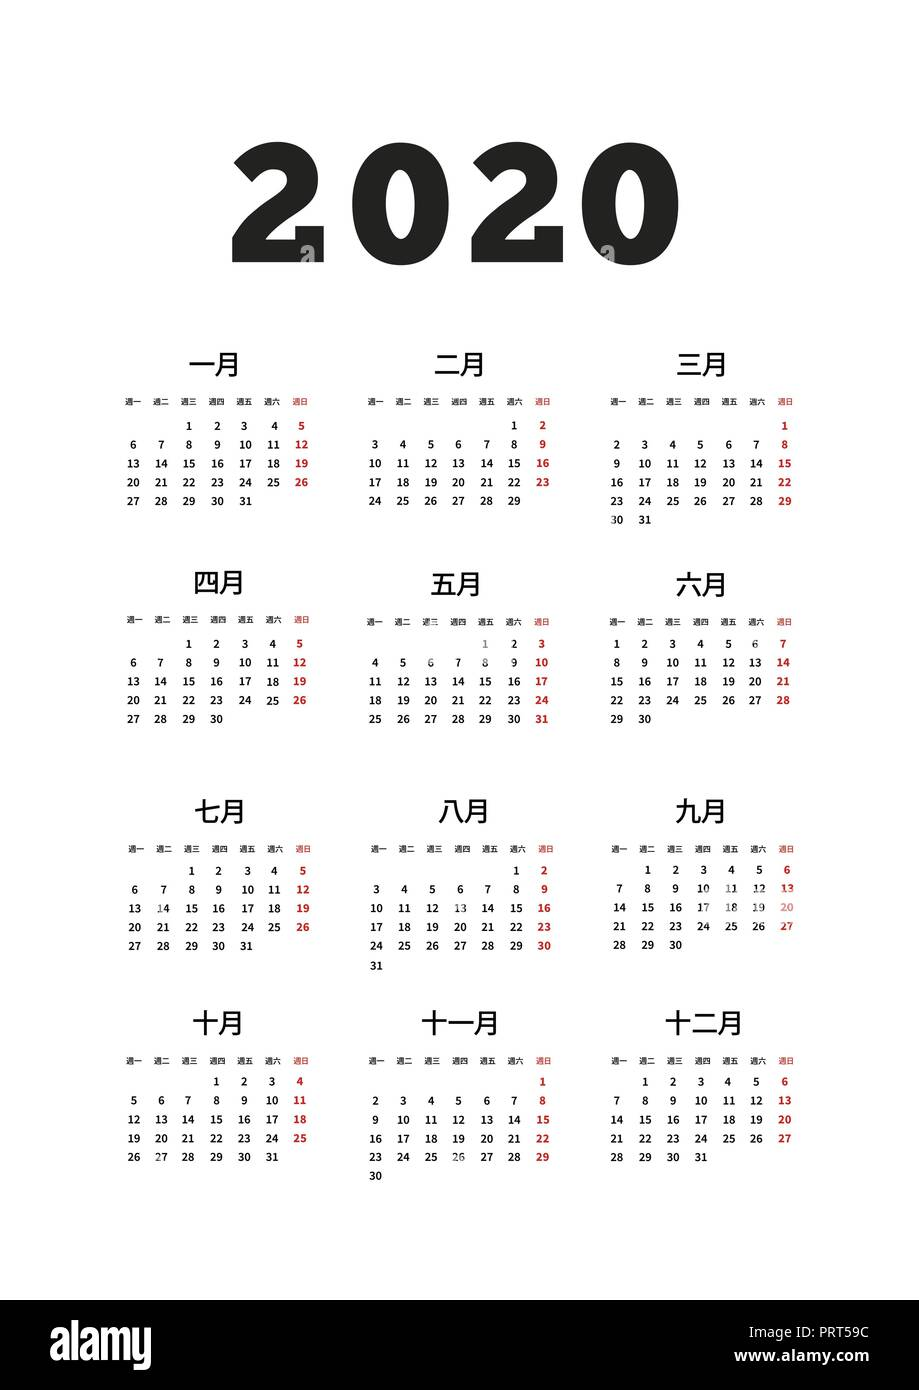 China 2020 Calendar 2020 year simple calendar on chinese language, A4 size vertical